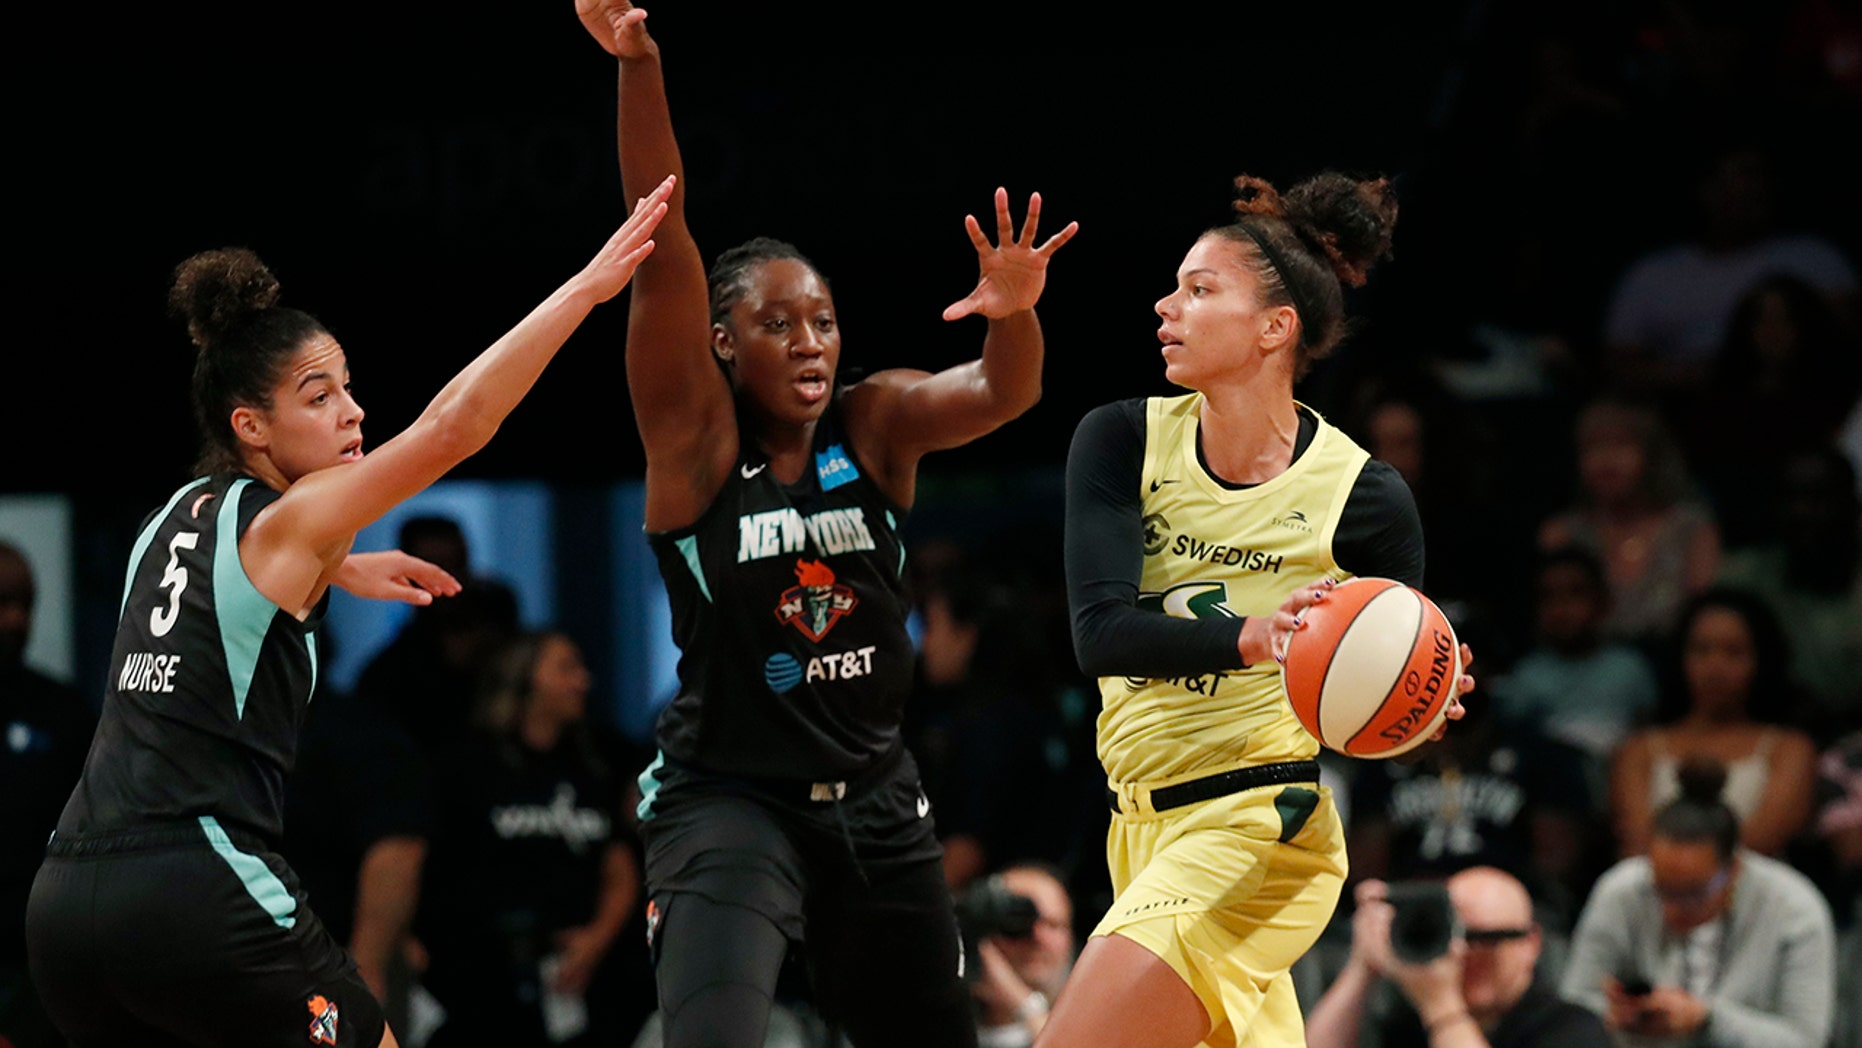 Westlake Legal Group WNBA-Alysha-Clark Storm's Alysha Clark raises money for dialysis unit fox-news/sports/wnba fnc/sports fnc Associated Press article 9233ce2d-17b7-5547-aec6-c22d8d149642